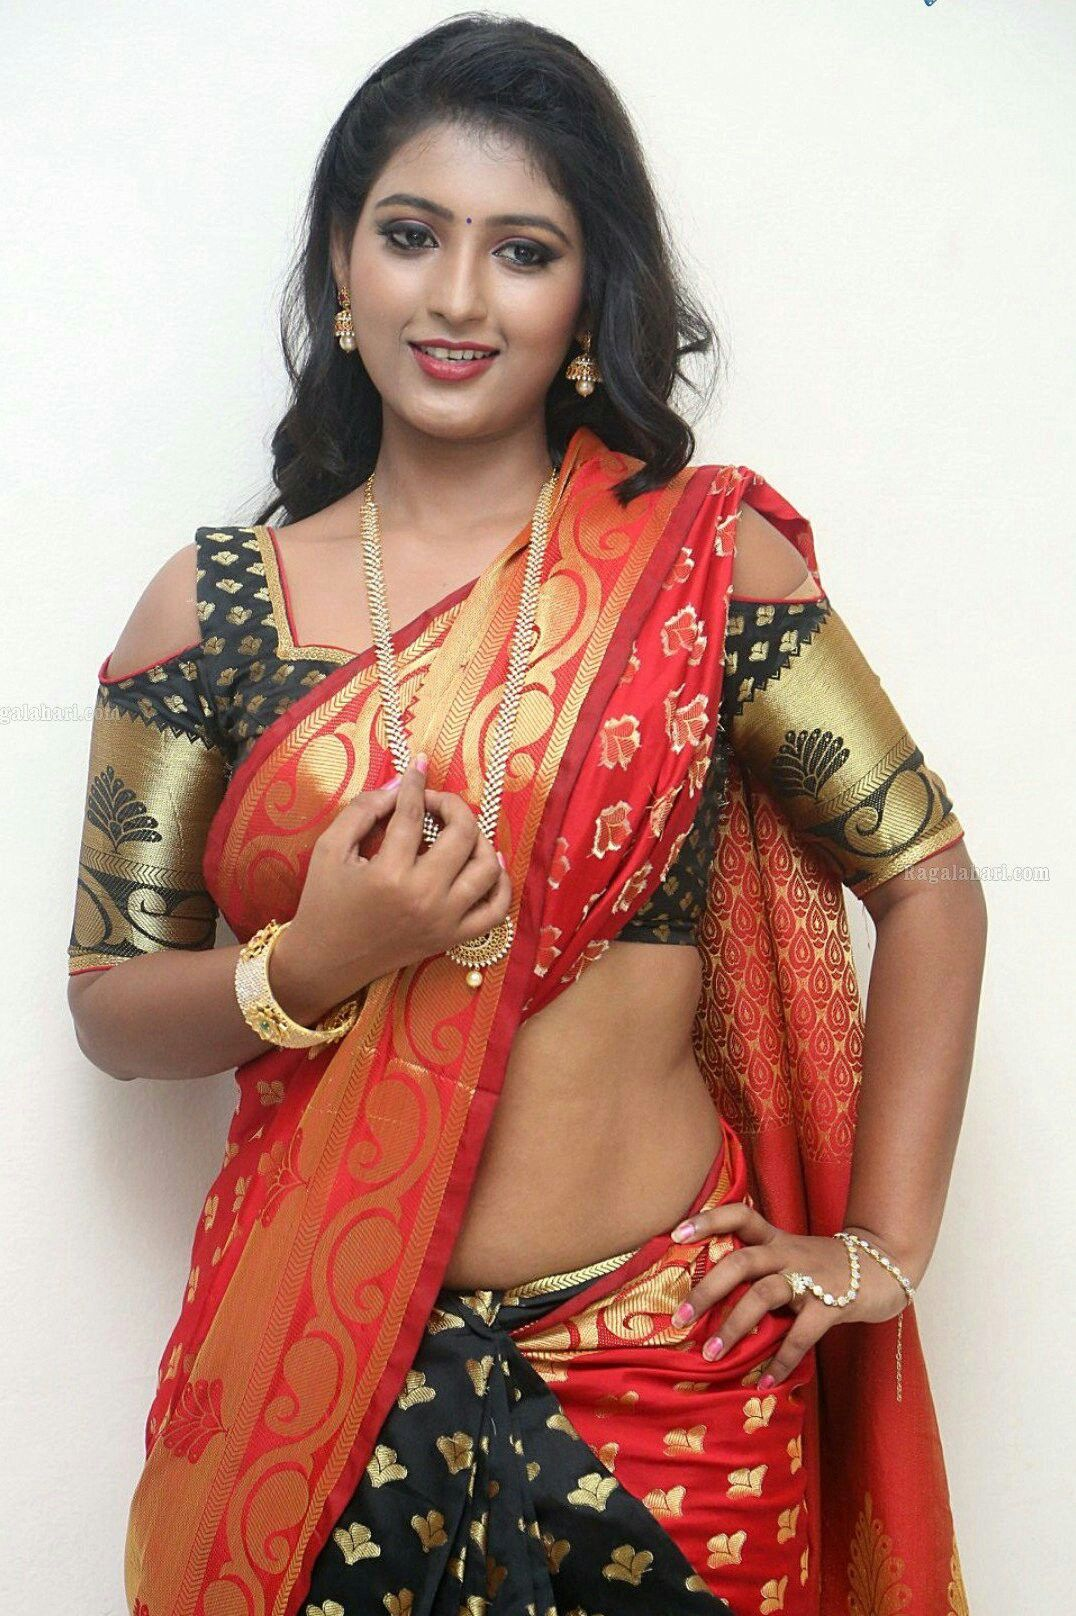 Cute bhabhi South Indian